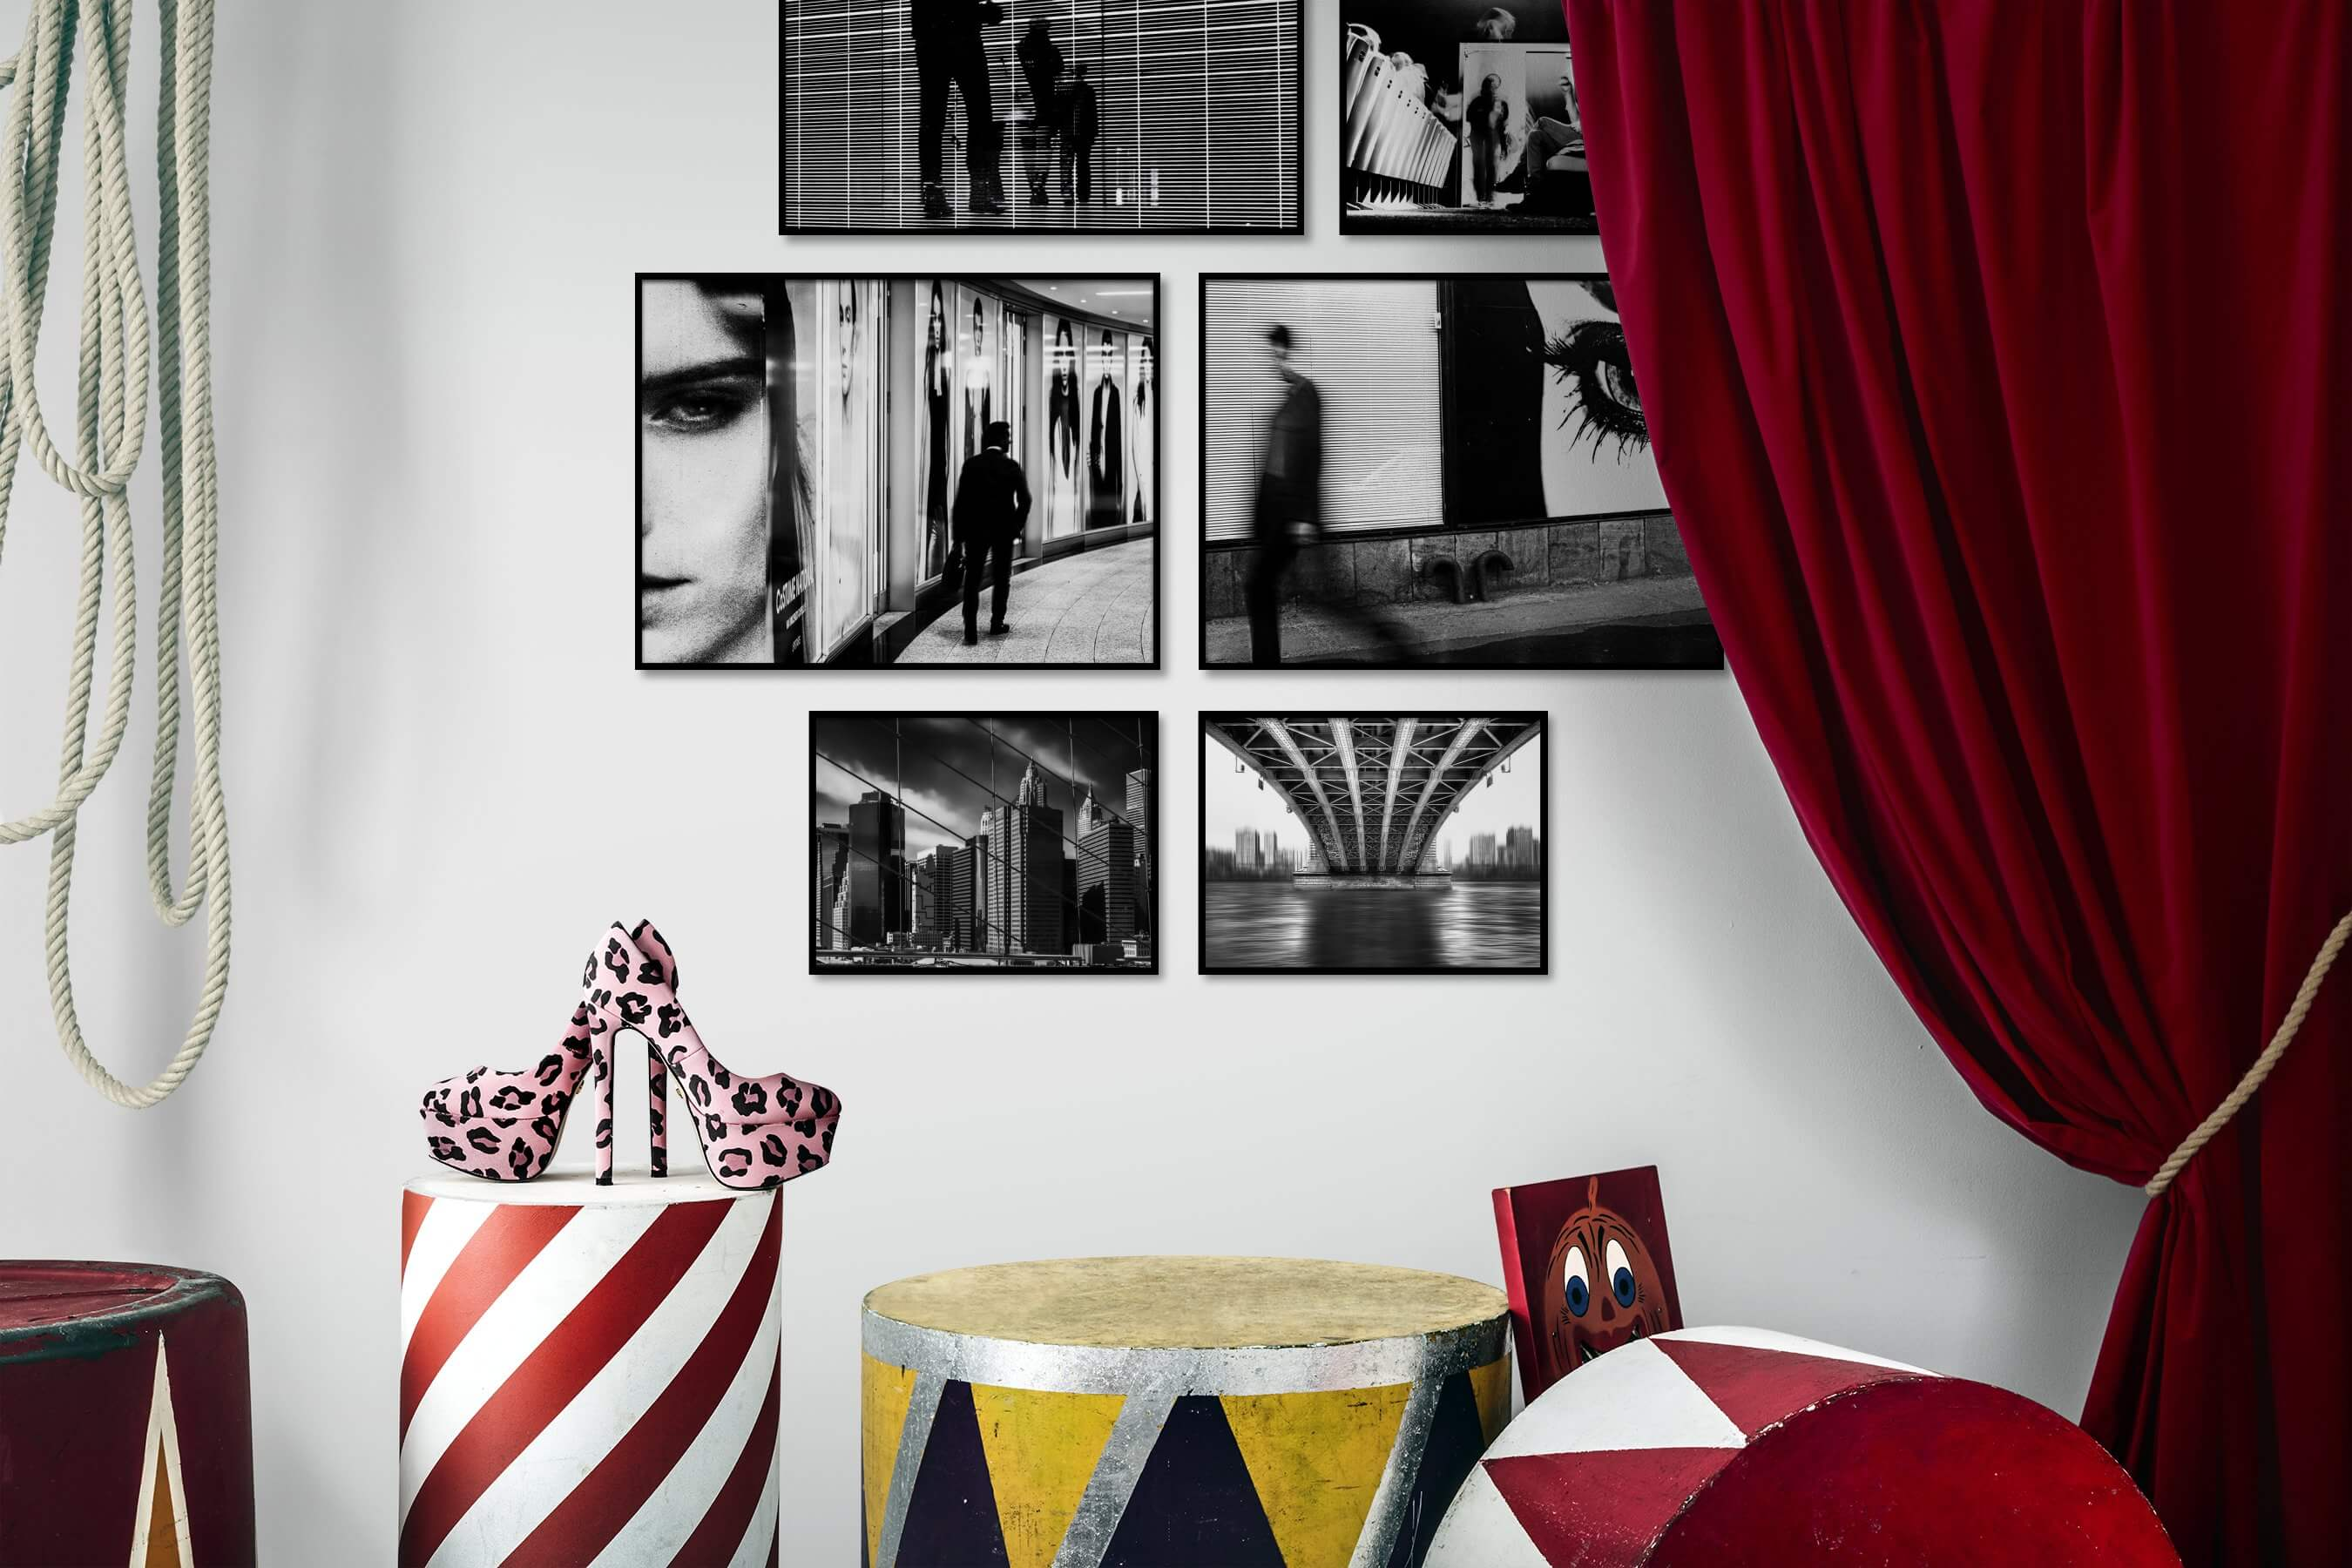 Gallery wall idea with six framed pictures arranged on a wall depicting Black & White, For the Maximalist, Artsy, City Life, Americana, and For the Moderate